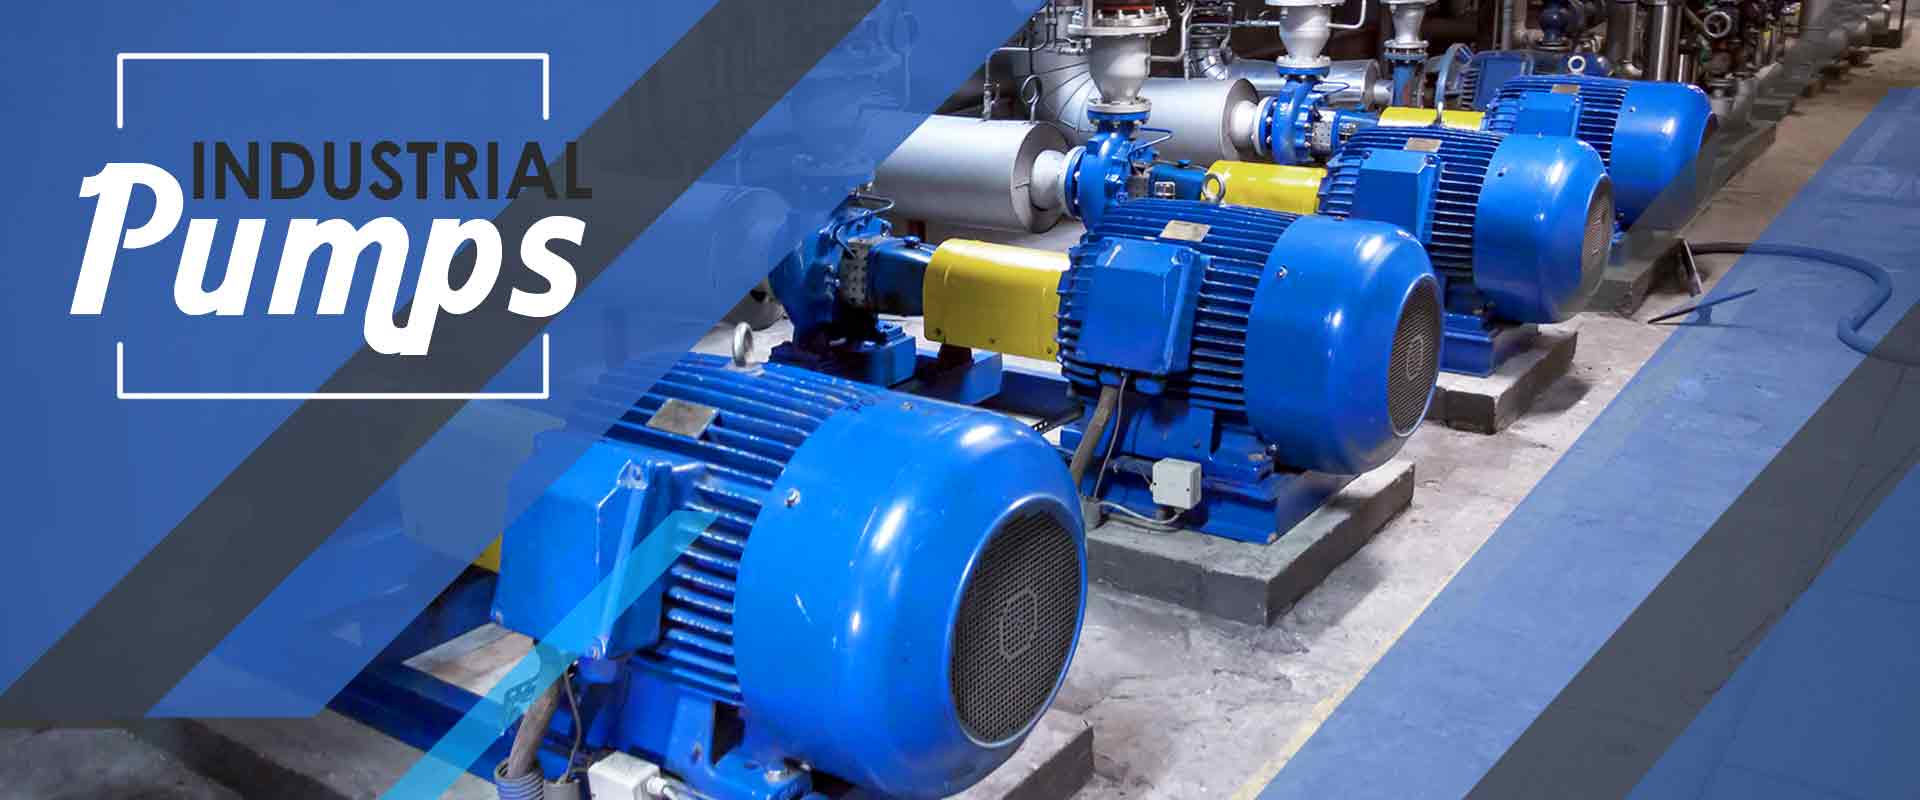 Industrial Pumps Manufacturers In California